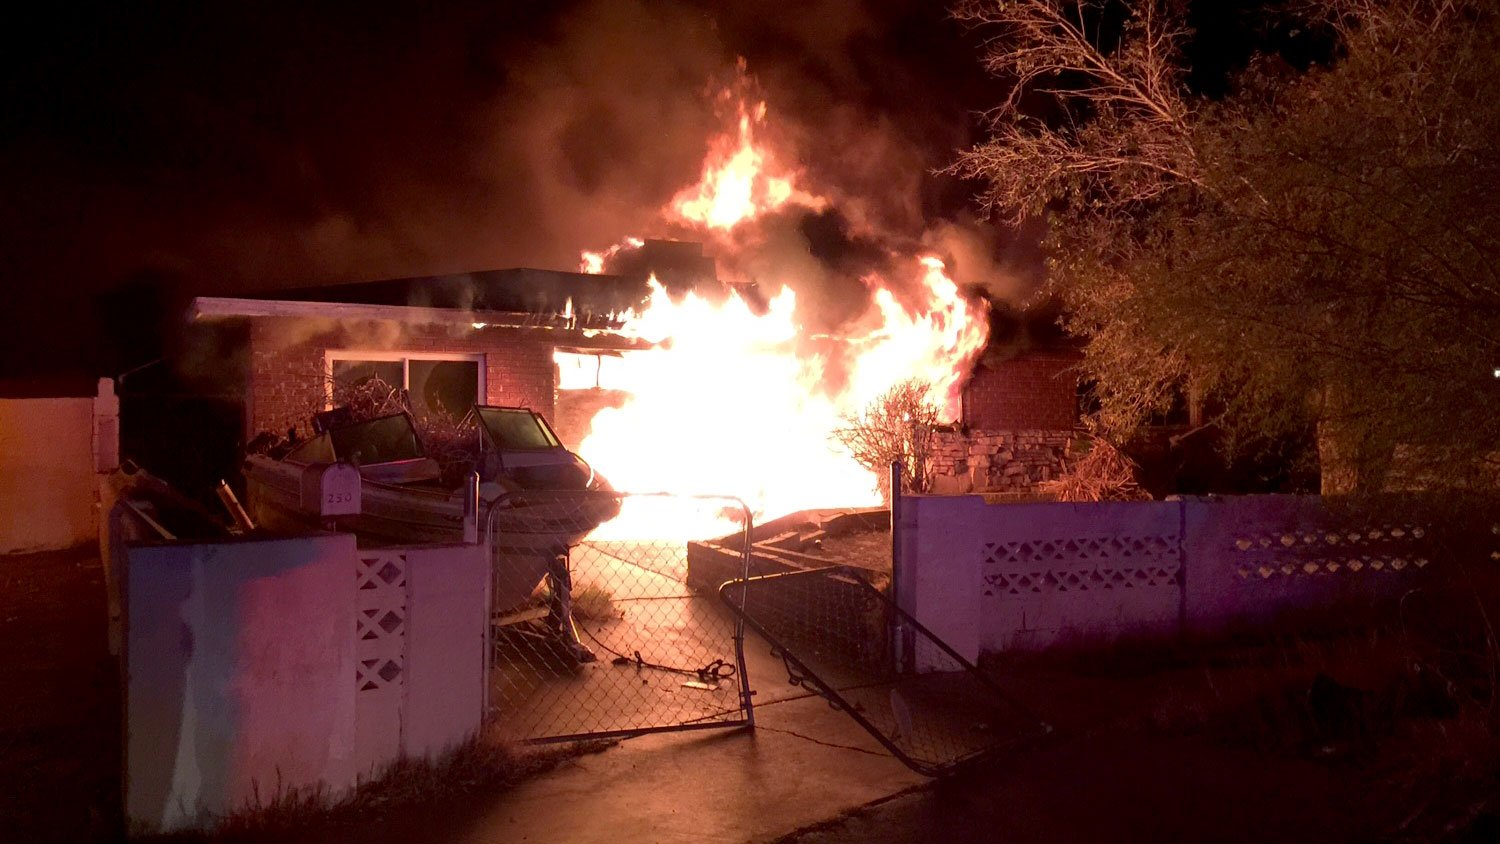 A fire caused $150,000 worth of damage to a home on Nov. 28, 2017. (Source: LVFR)